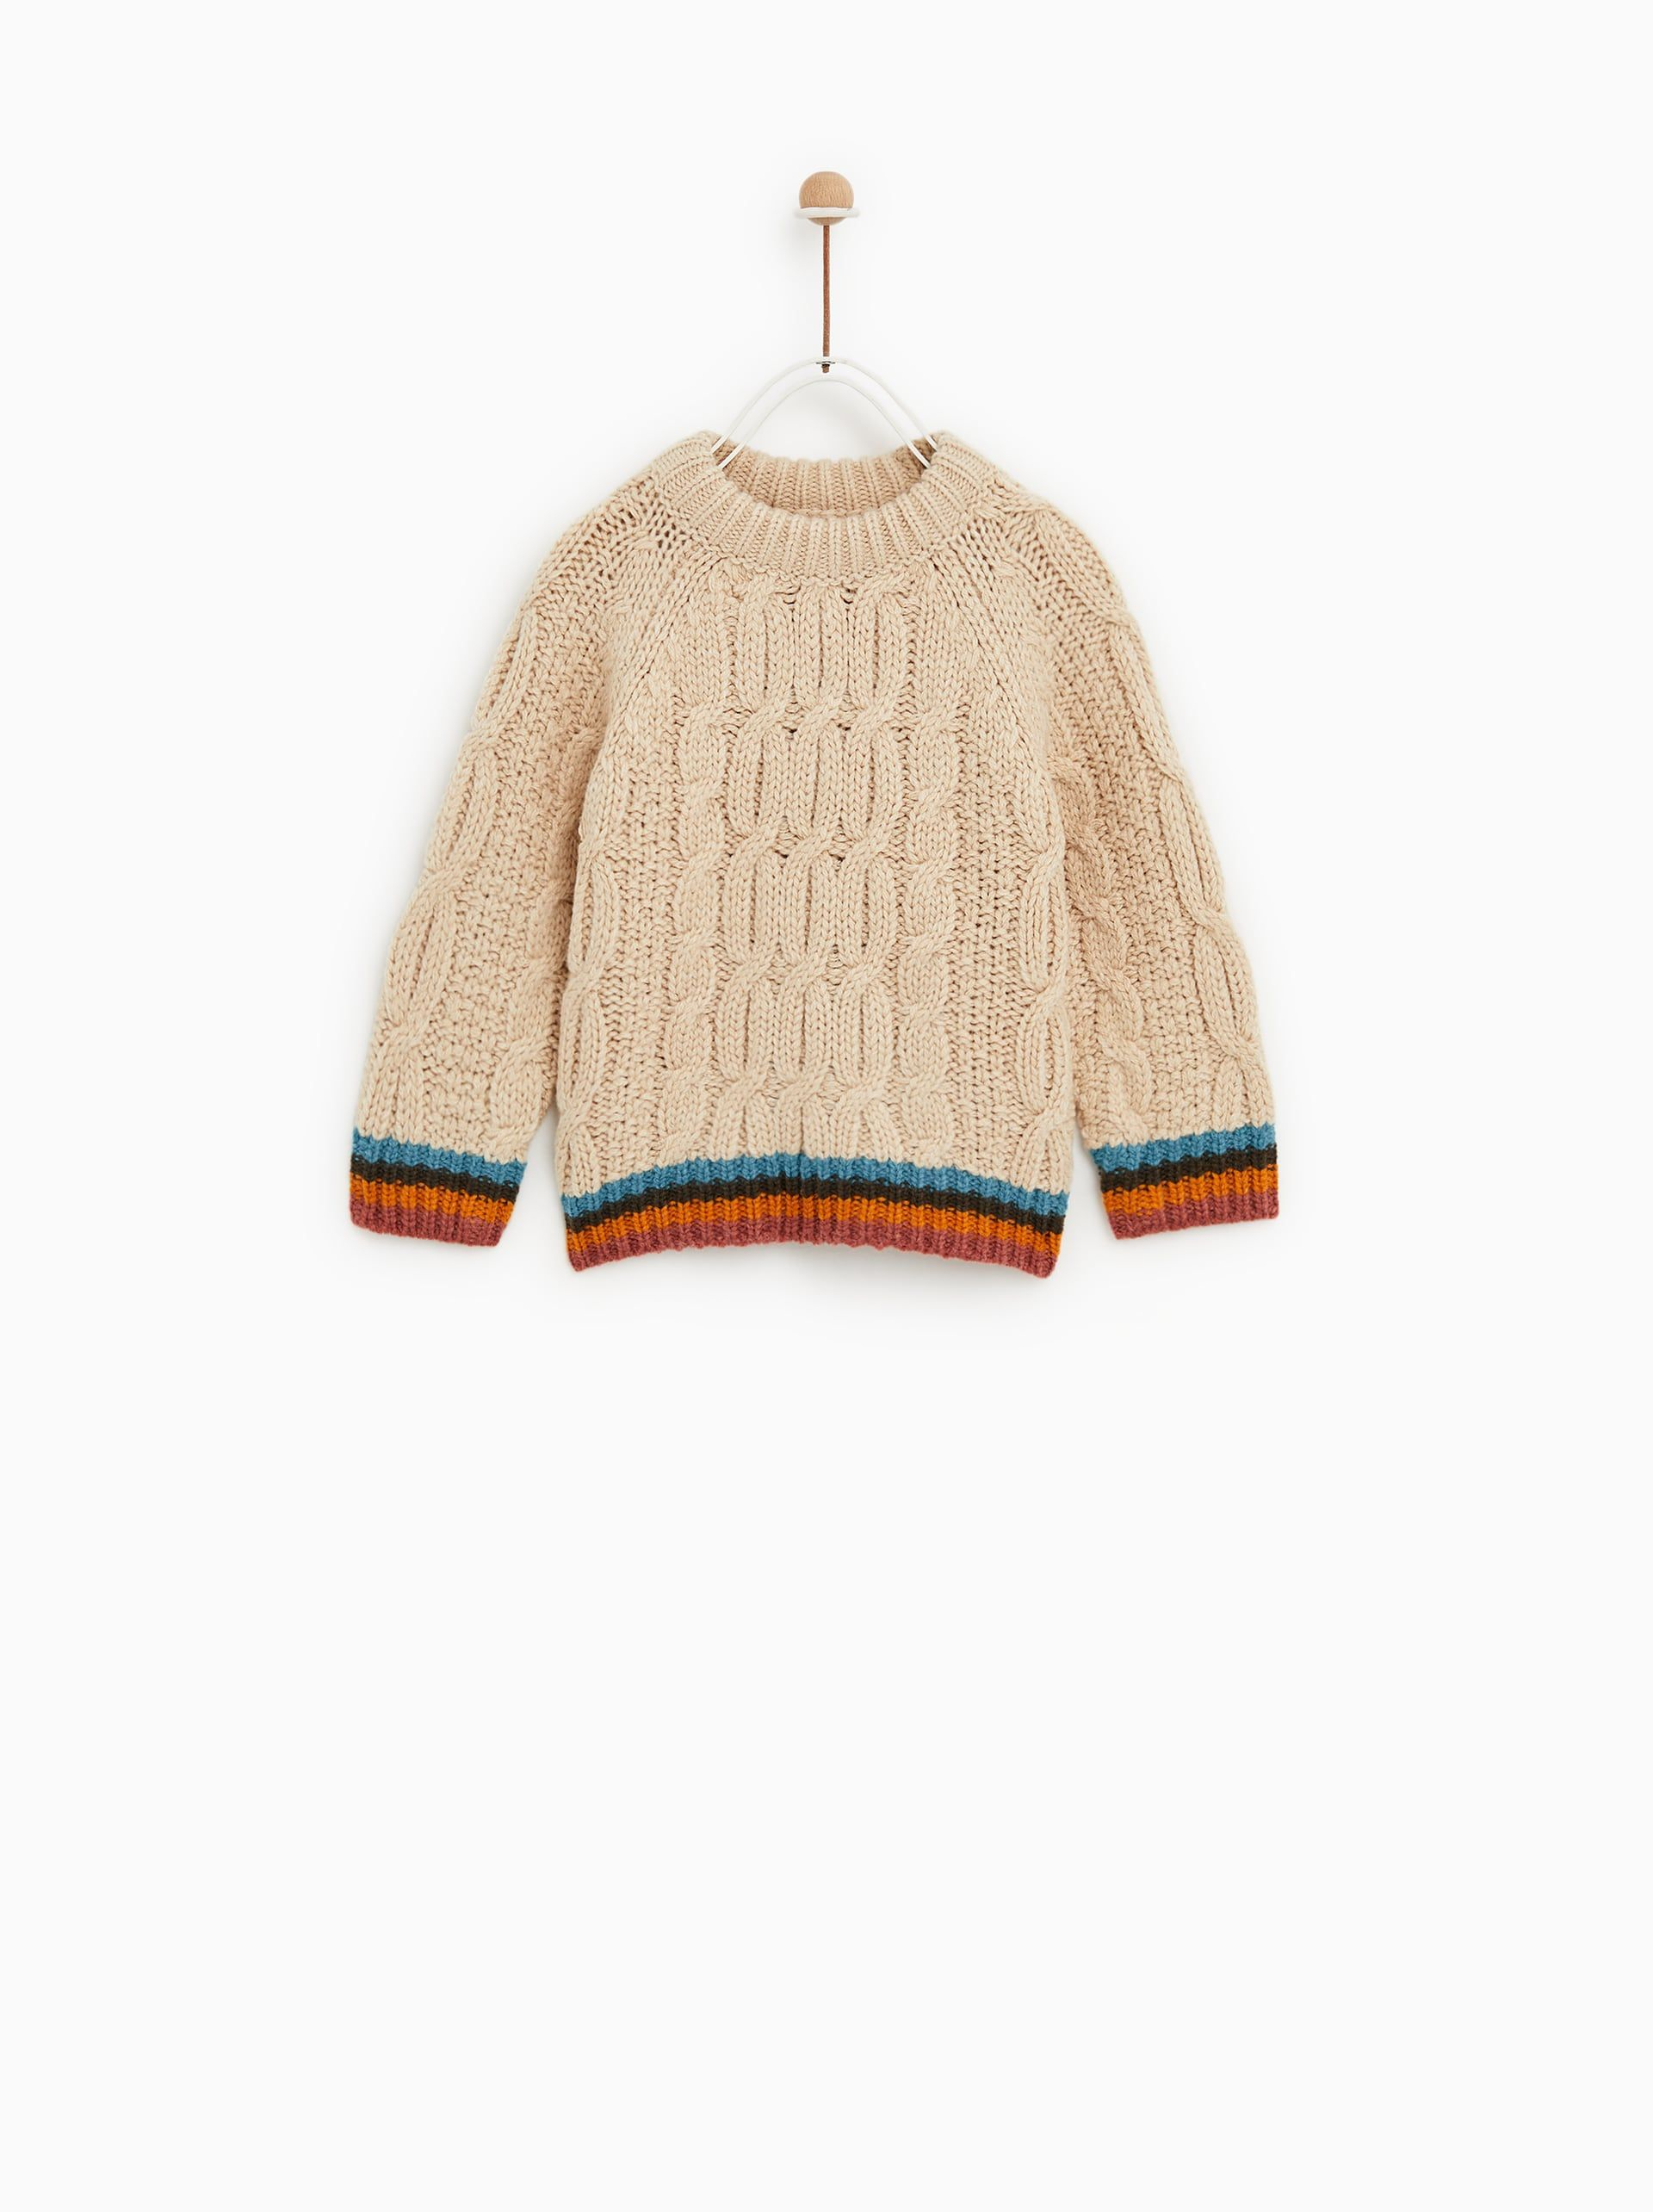 ceaa5e6a1 Image 1 of CABLE KNIT SWEATER from Zara